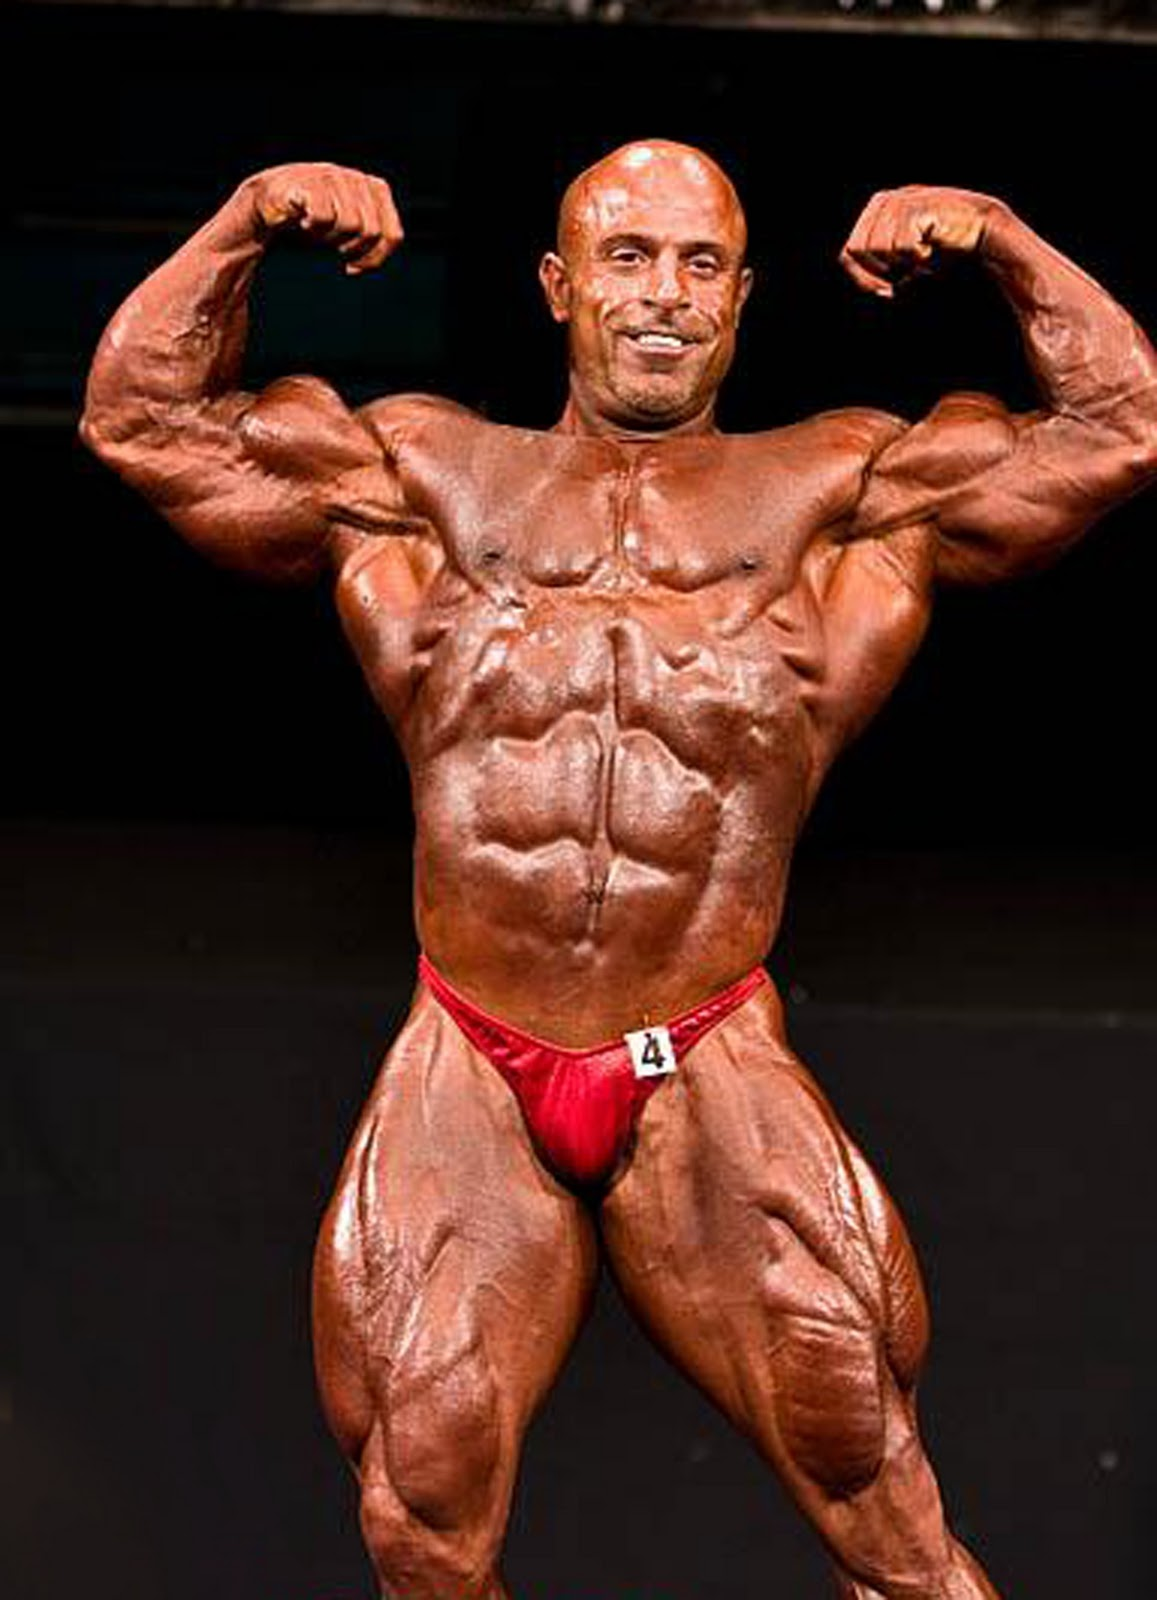 Bodybuilding pictures